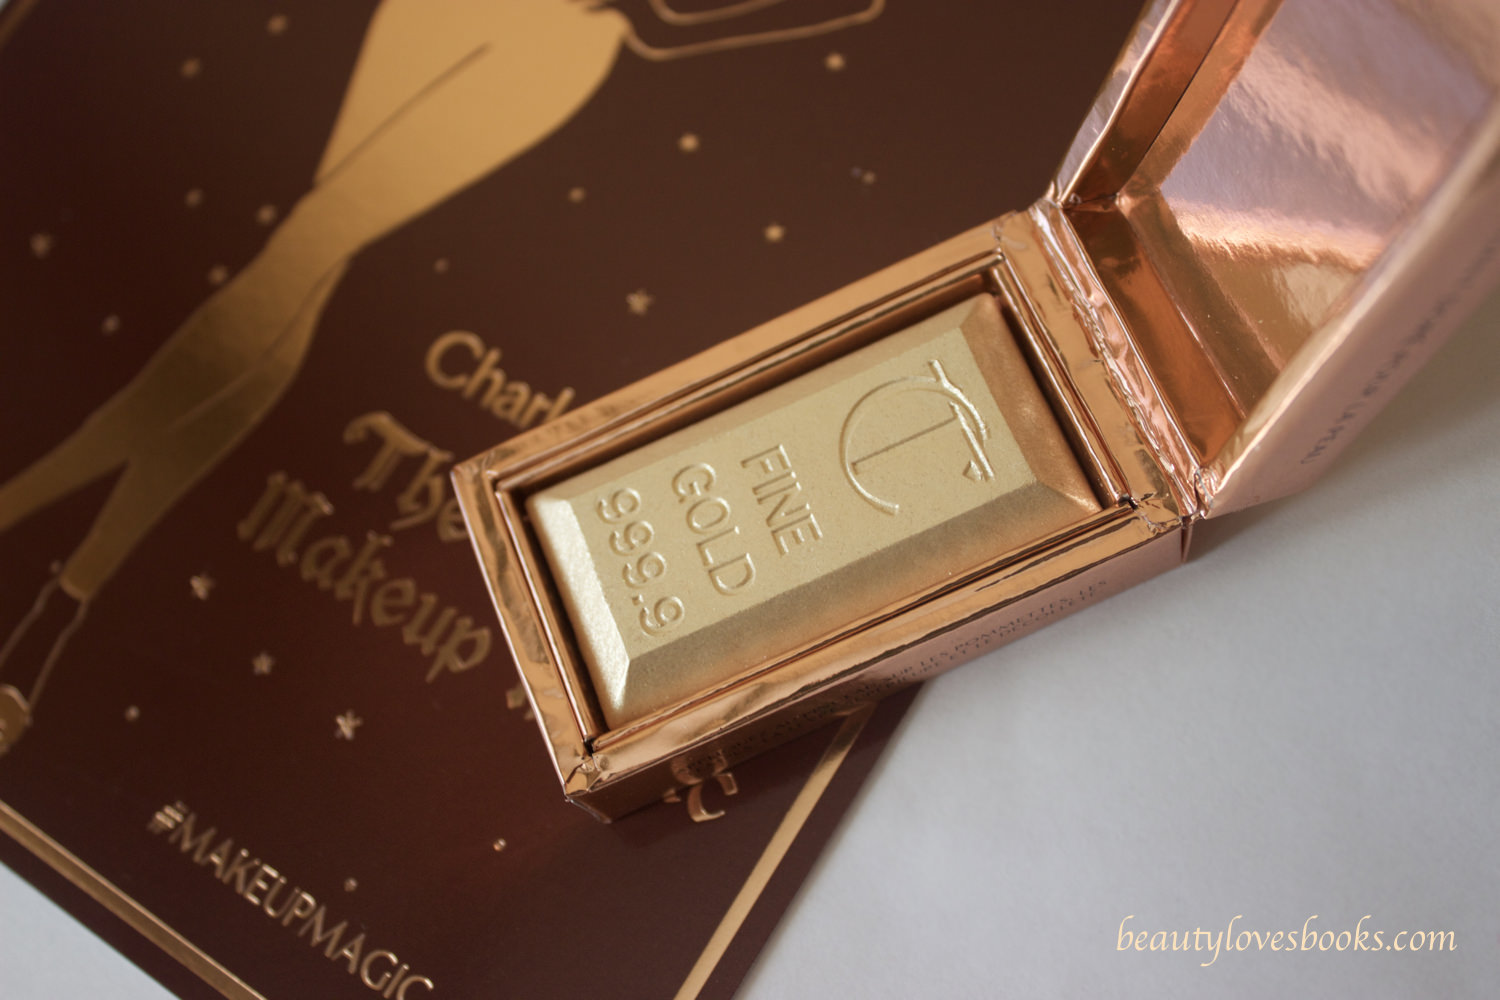 Charlotte Tilbury Bar of gold skin gilding highlighter